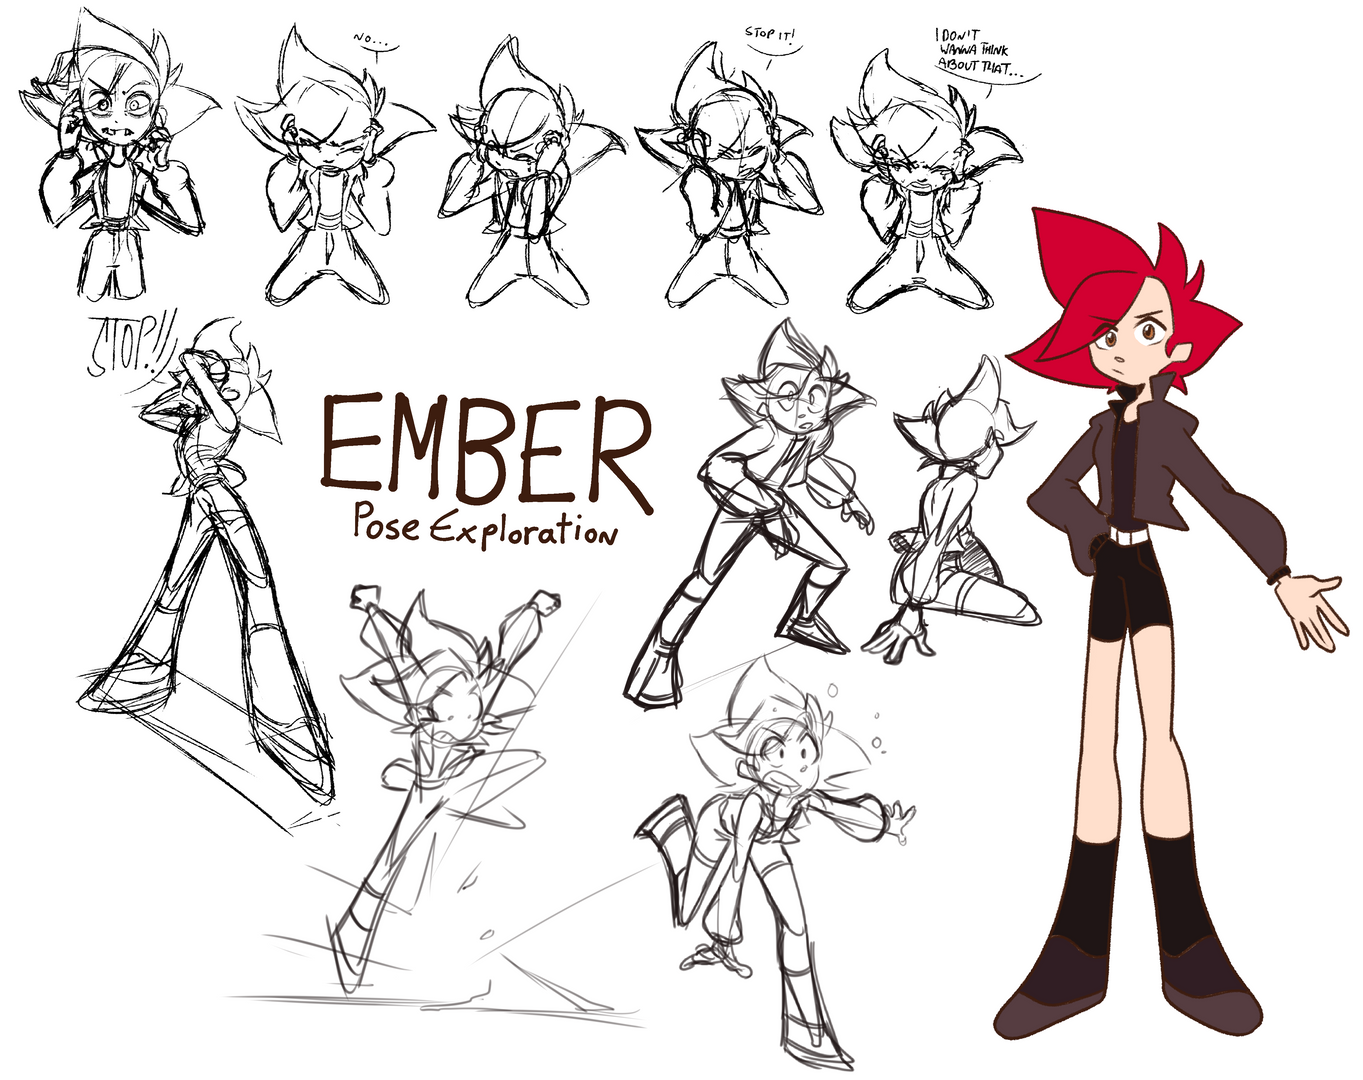 Ember Pose Exploration